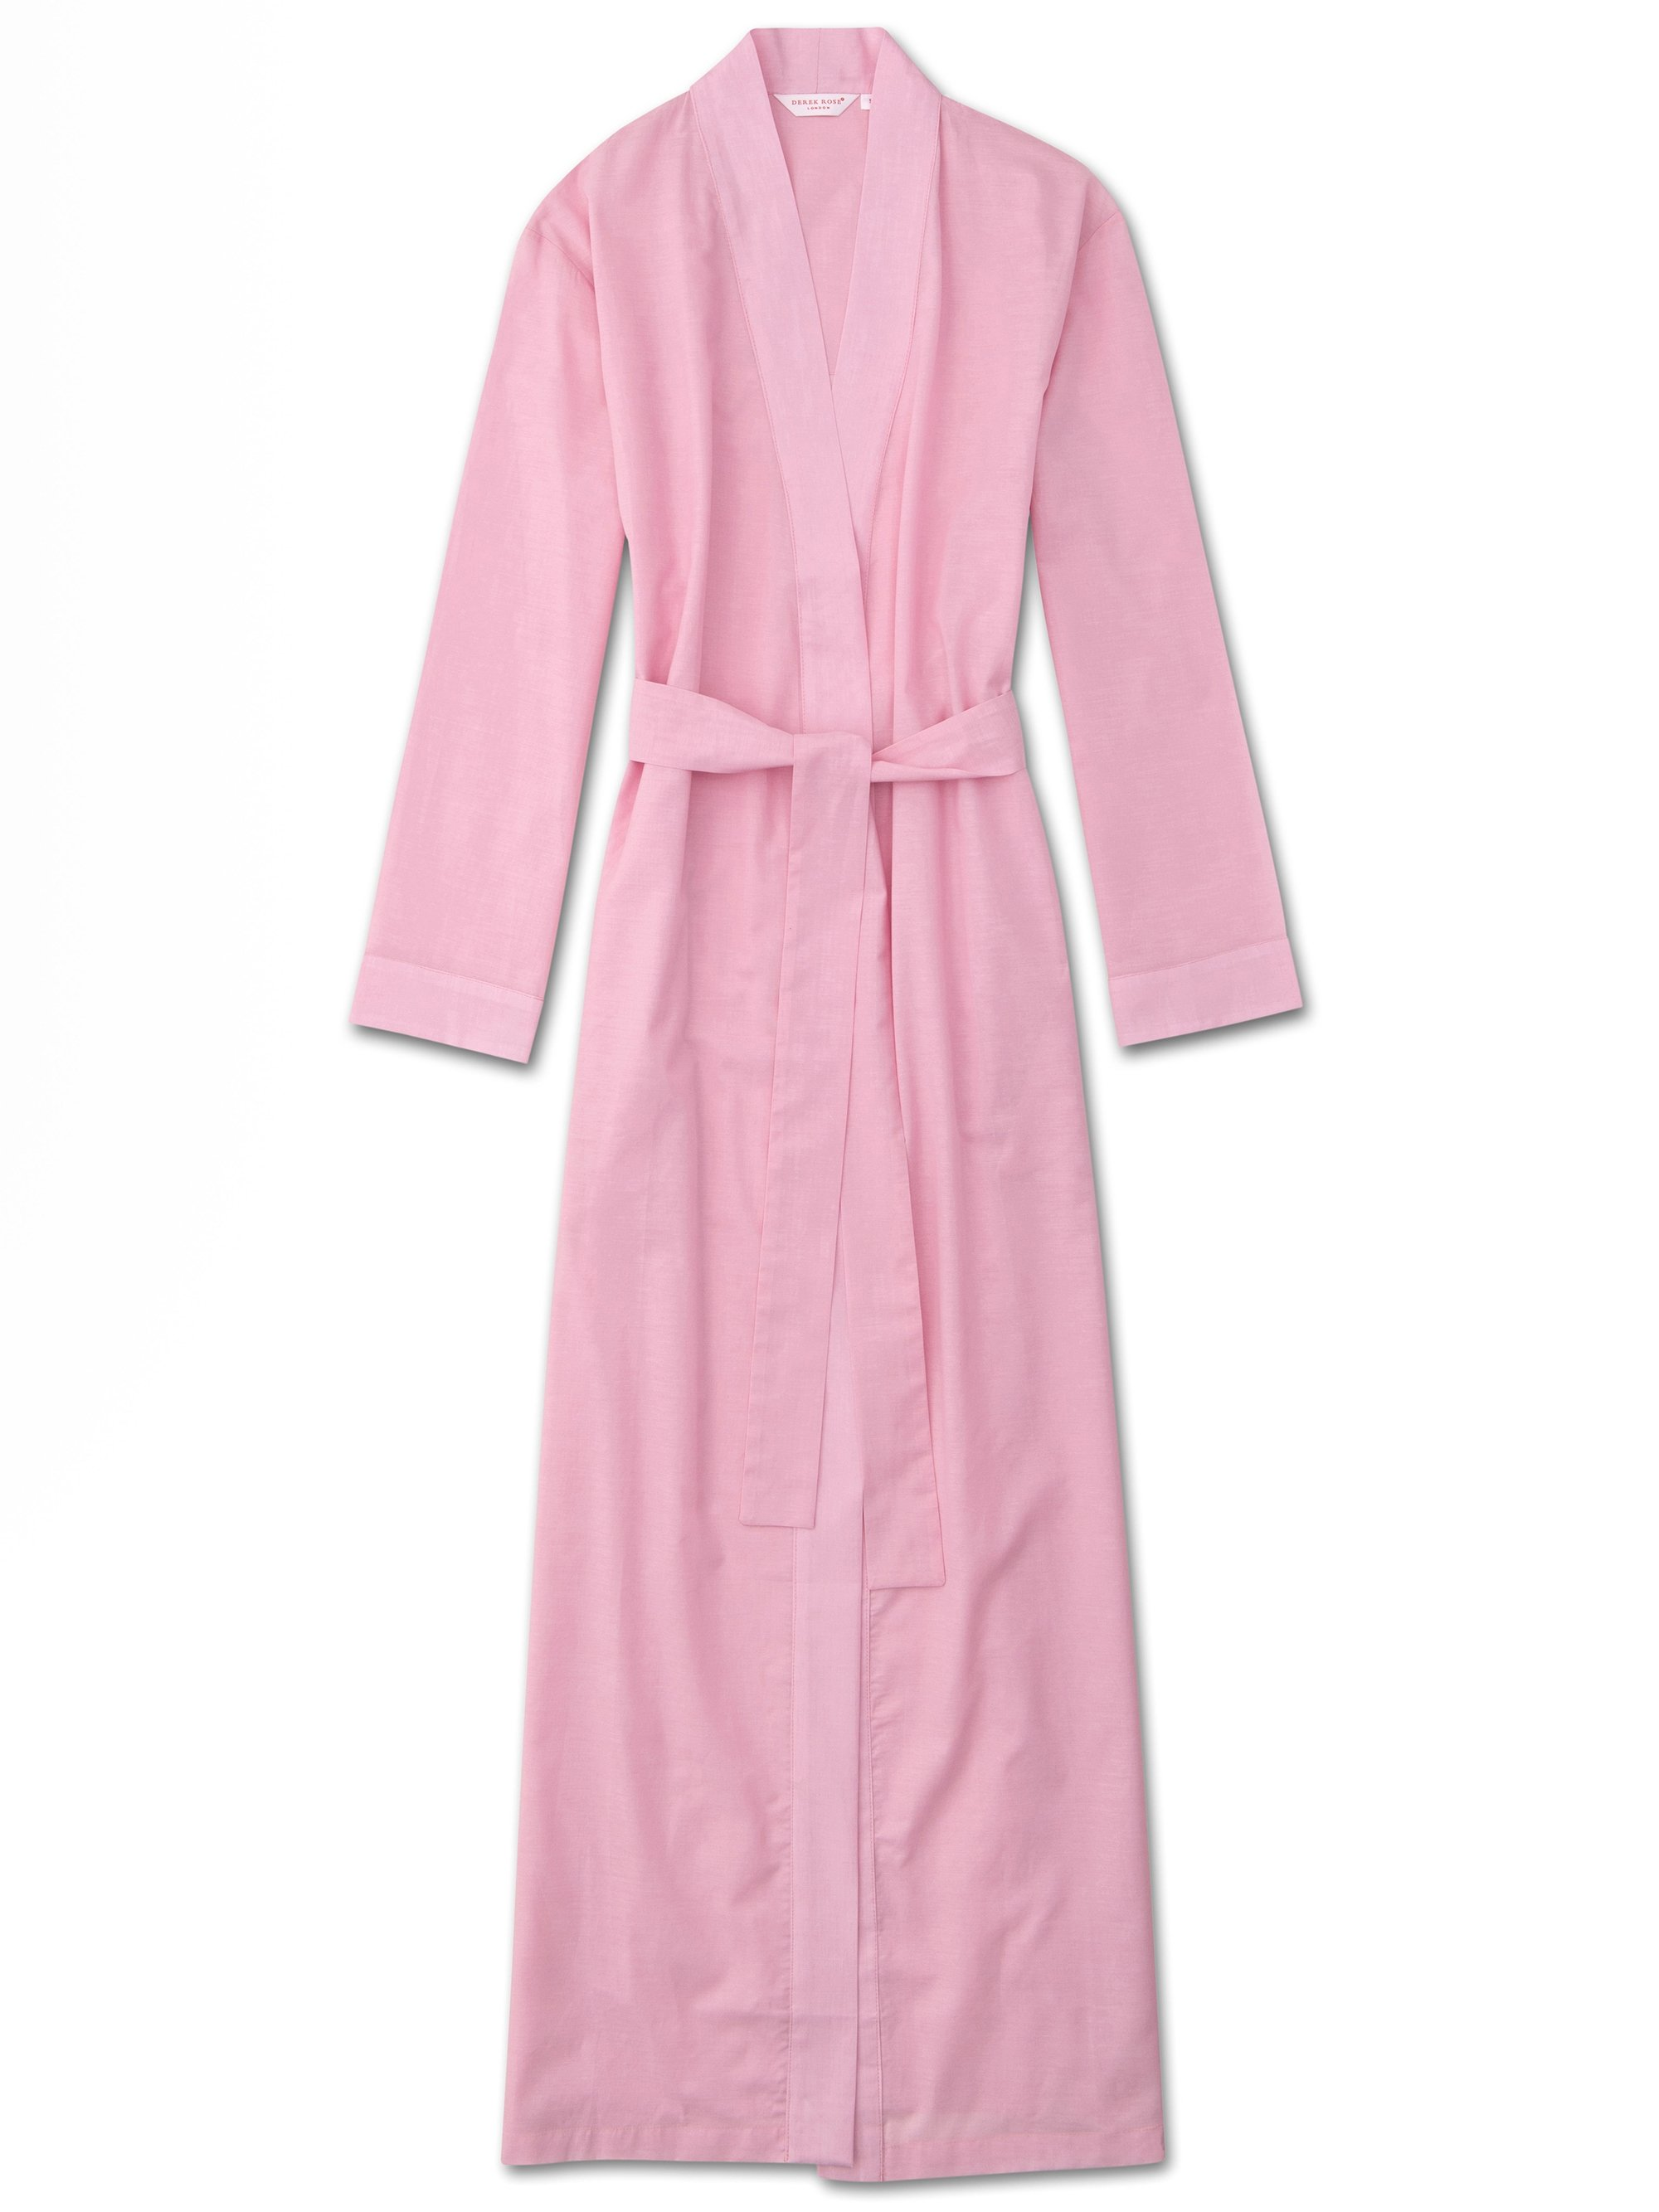 Women's Full Length Dressing Gown Amalfi Cotton Batiste Rose